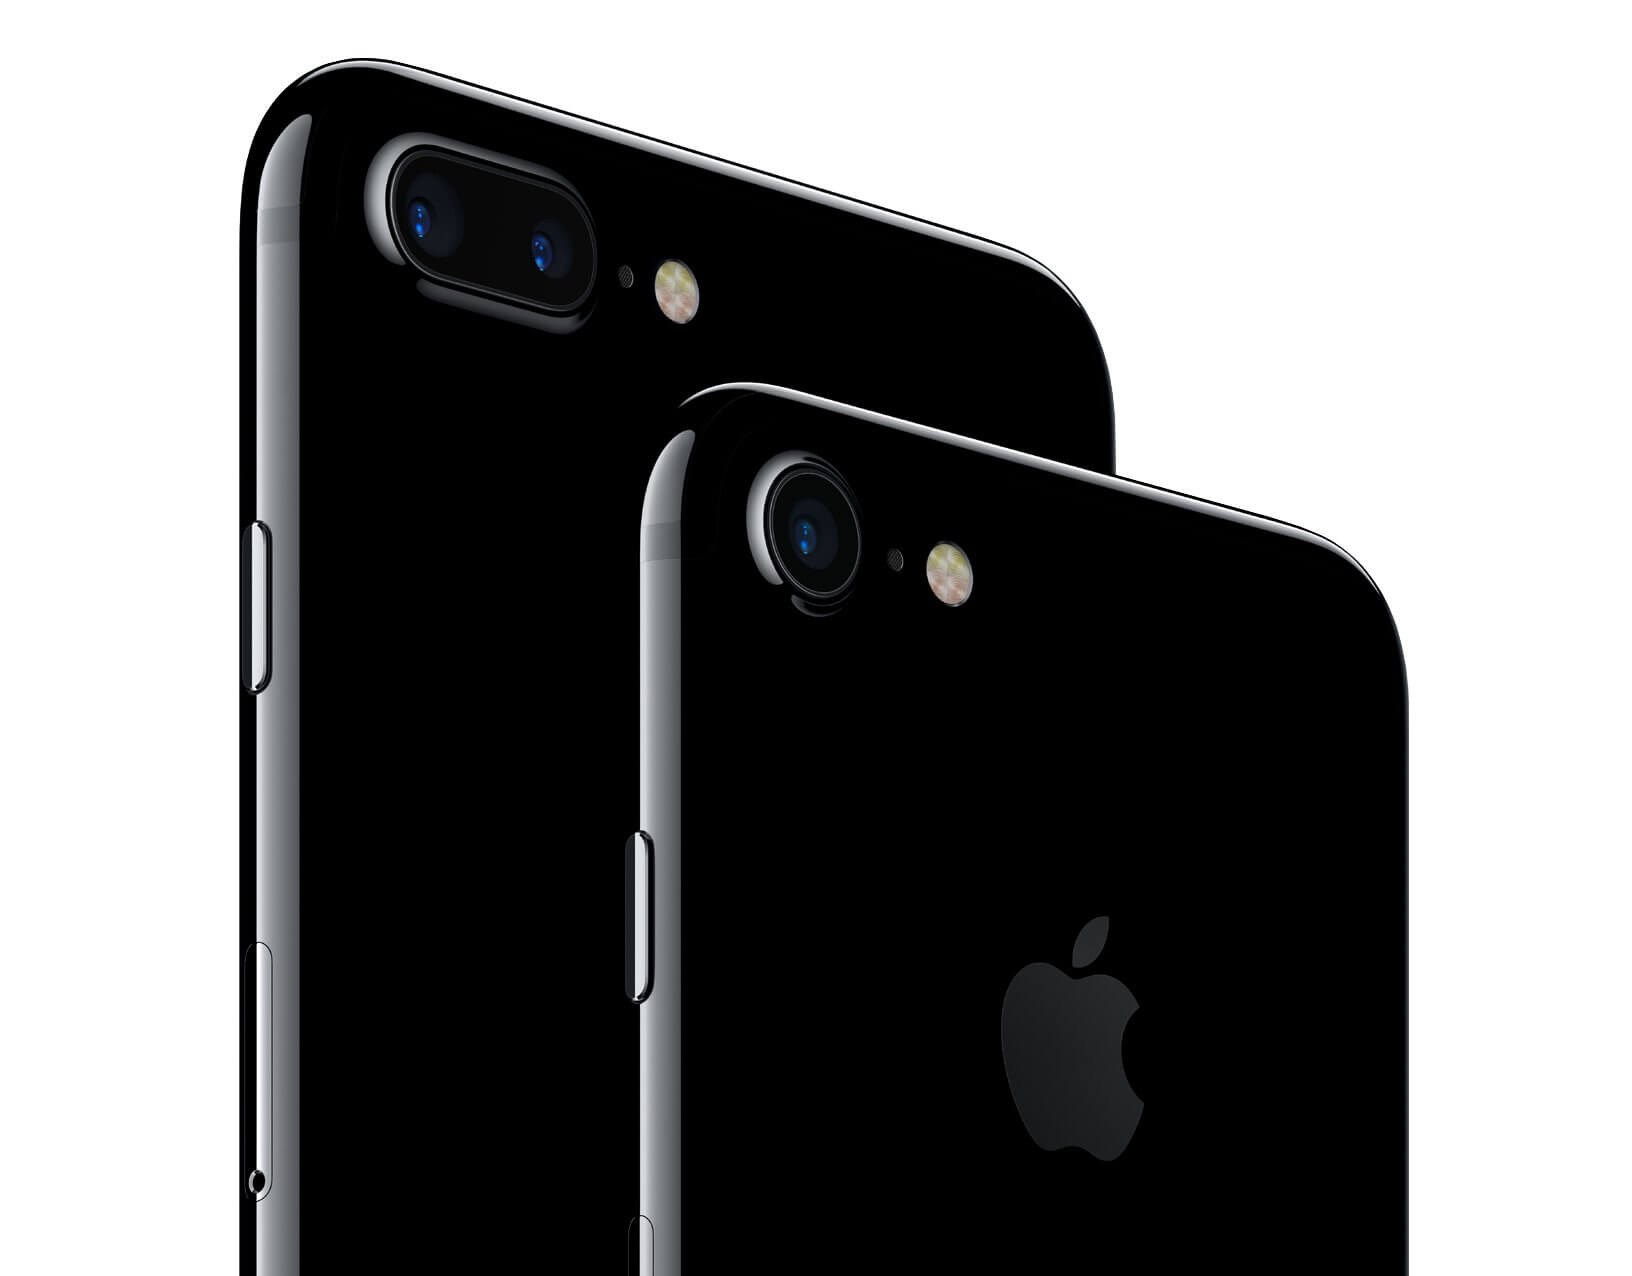 iPhone 7 und iPhone 7 Plus in Jetblack